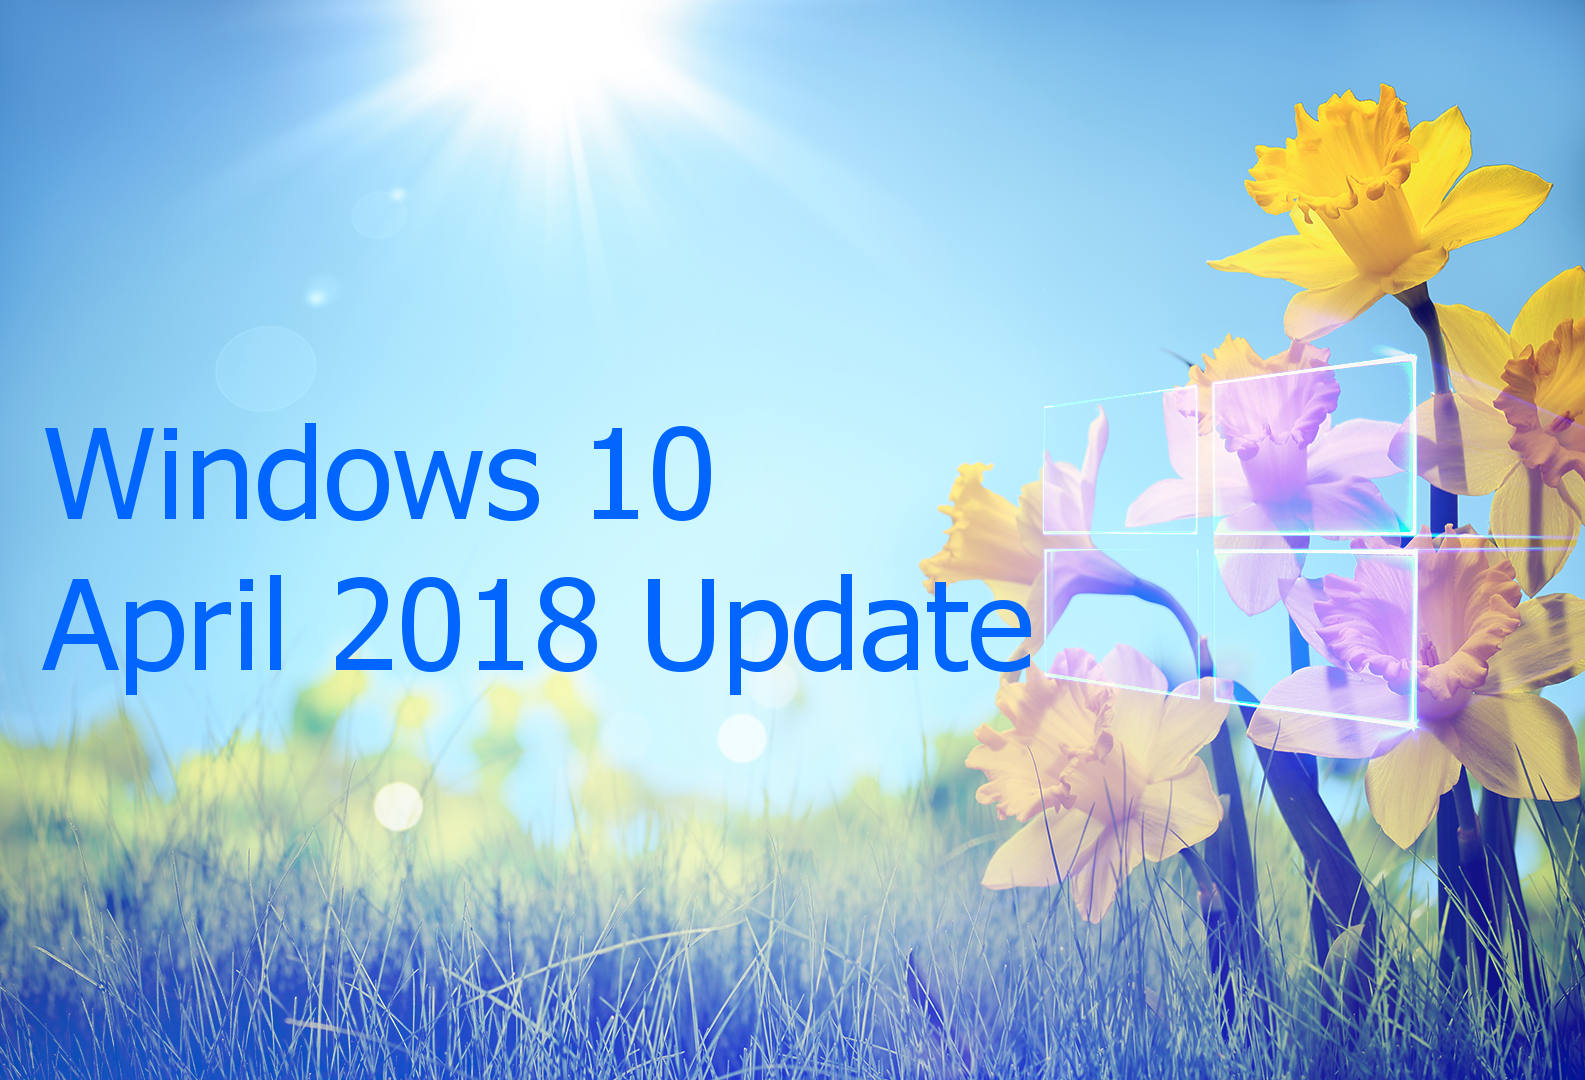 windows 10(diez) April 2018 Update